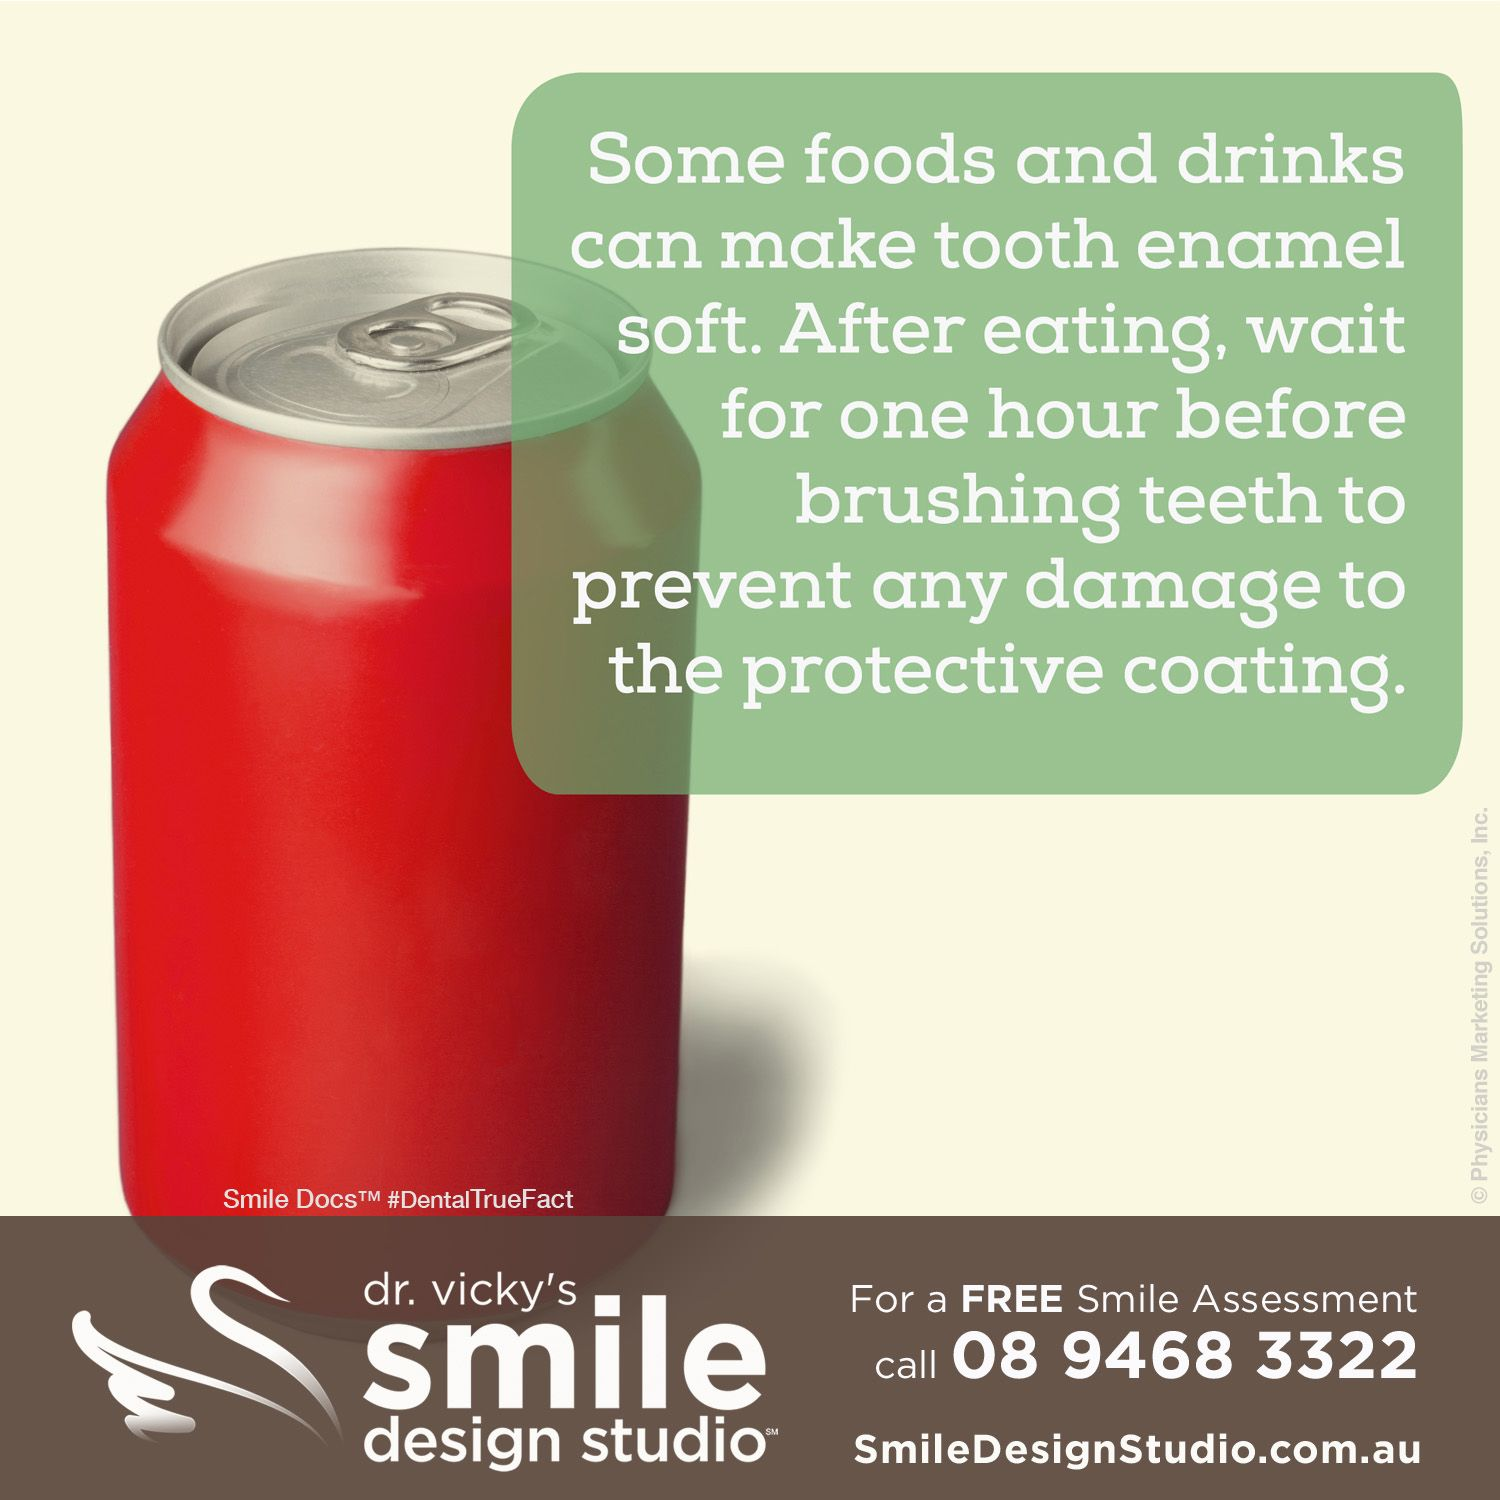 dental jobs teeth wait eating after any brushing tooth enamel hour drinks foods soft before some